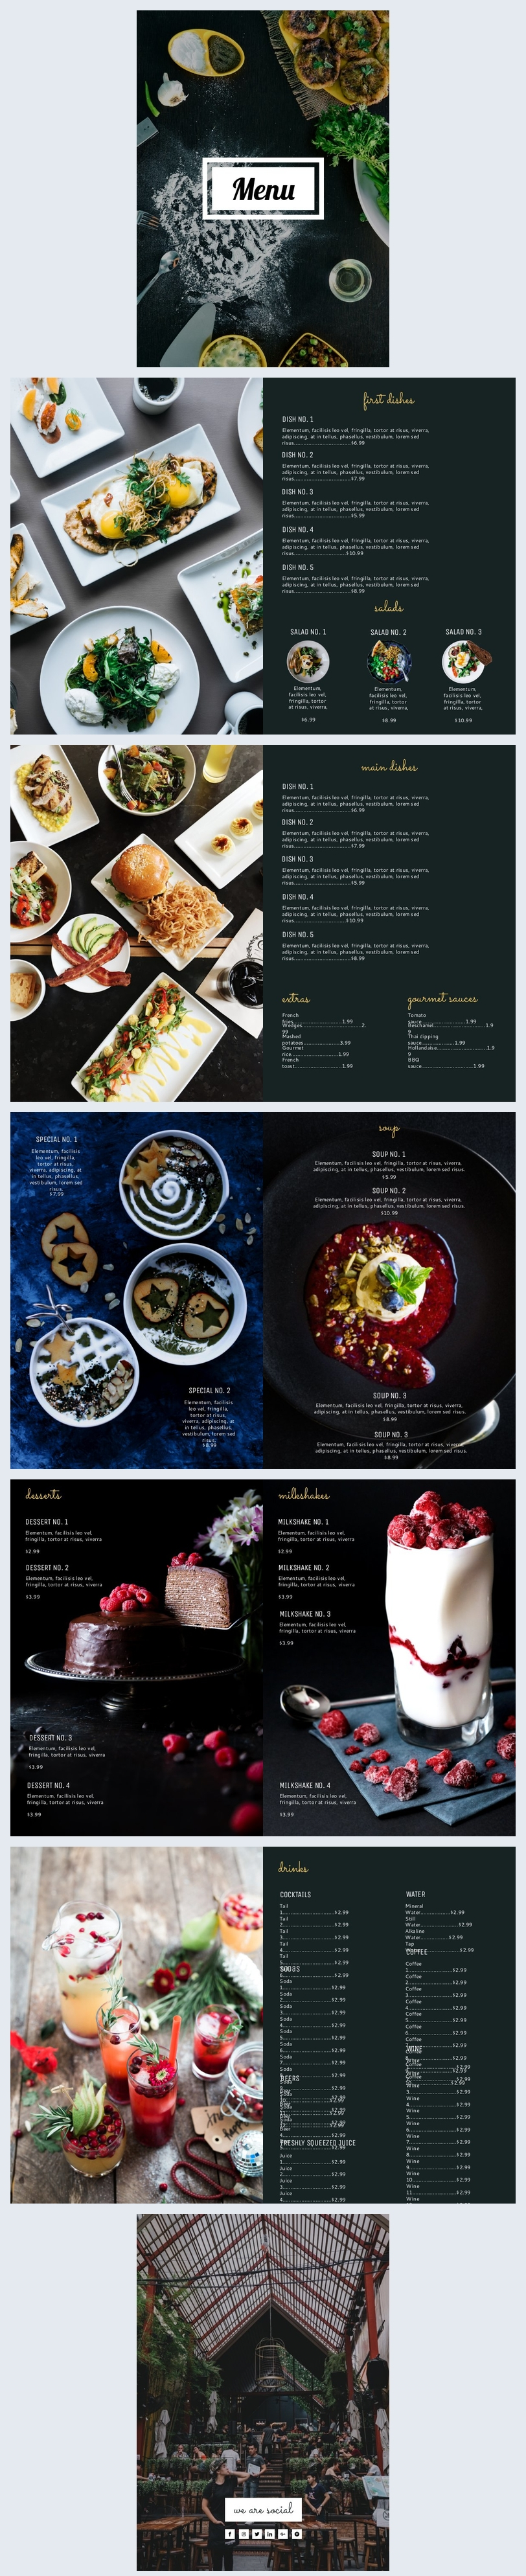 Creative Restaurant Menu Design